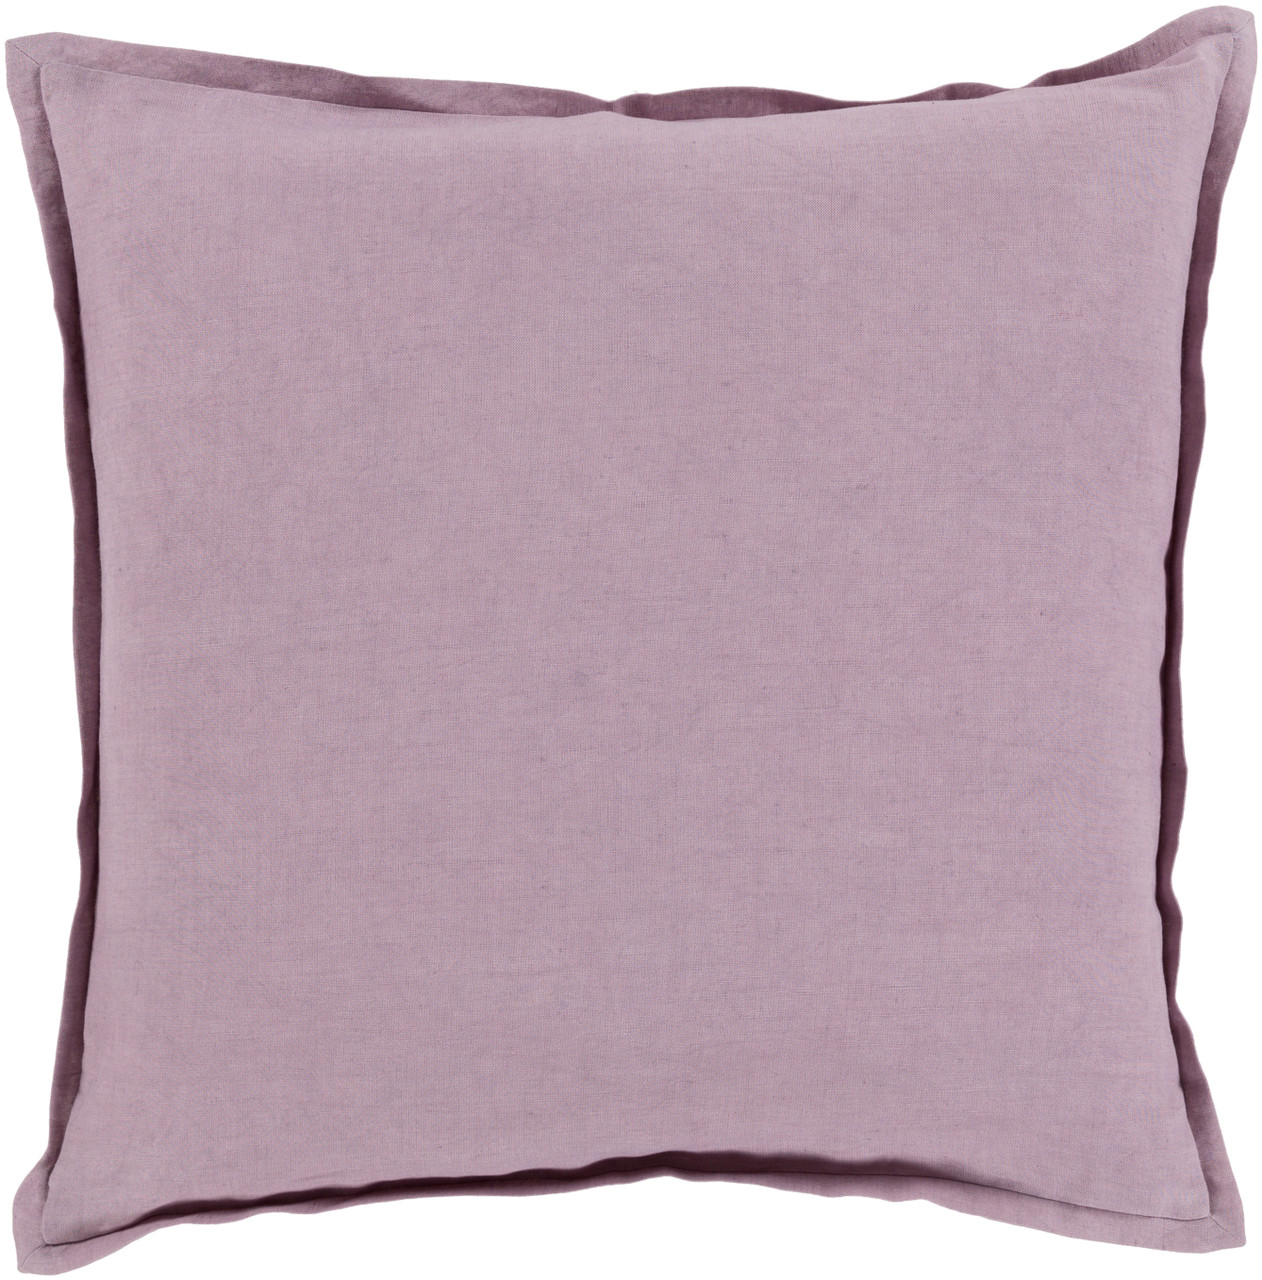 Solid Purple Decorative Pillows : 20? Solid Elegance Lavender Lipstick Purple Decorative Square Throw Pillow Christmas Central